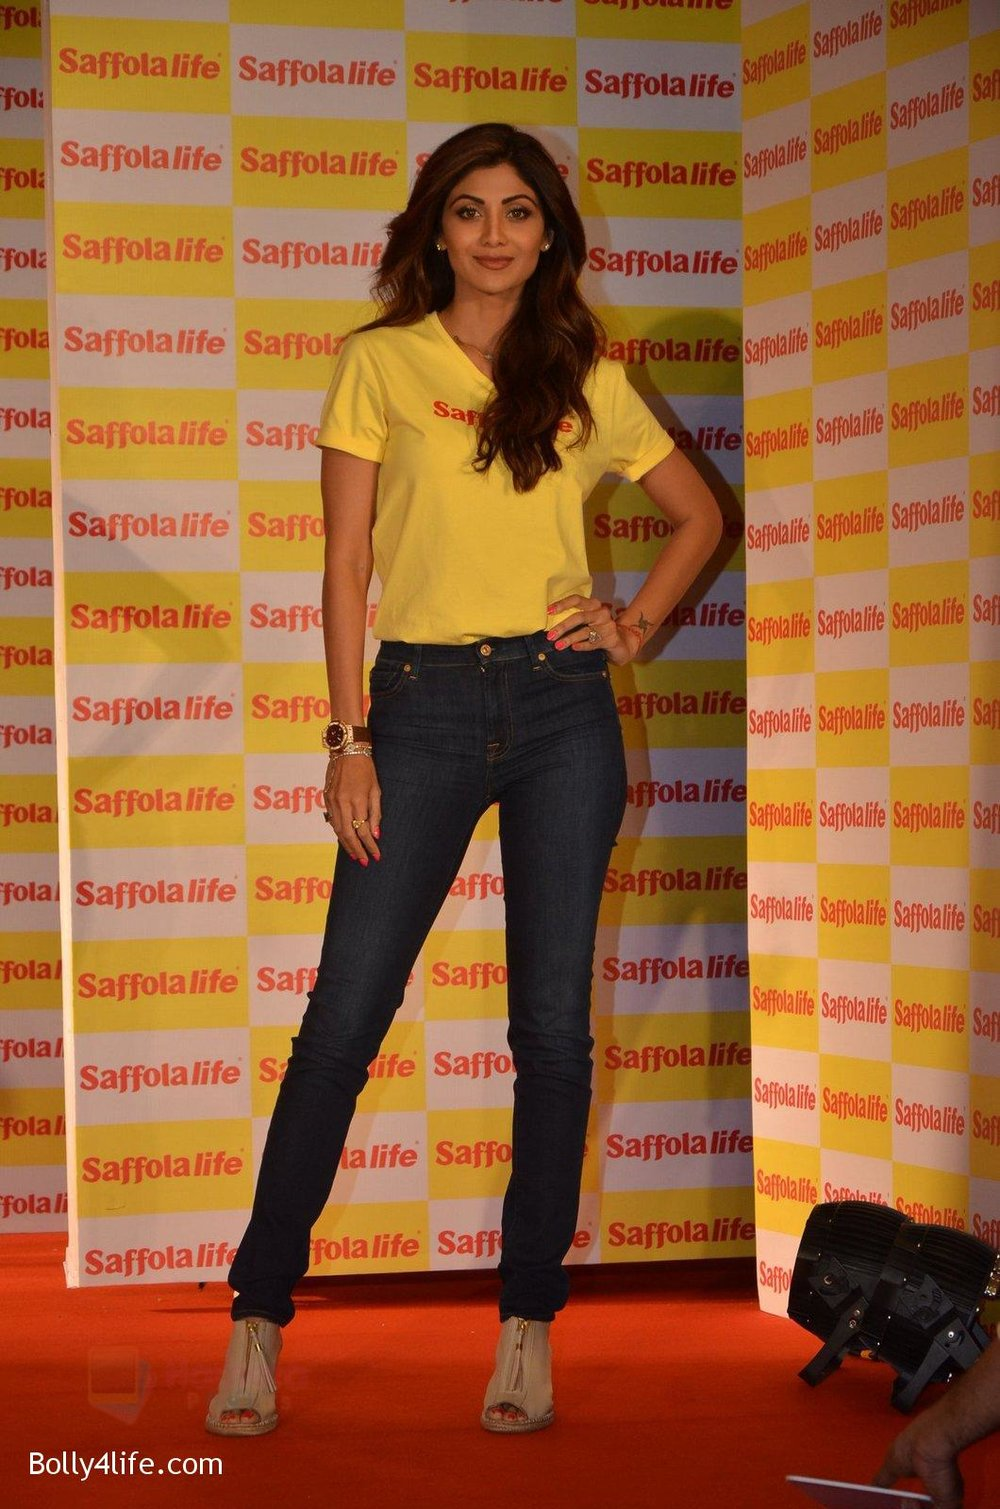 Shilpa-Shetty-during-the-World-Heart-Day-program-organized-by-Saffola-Life-in-Mumbai-on-28th-Sept-2016-11.jpg